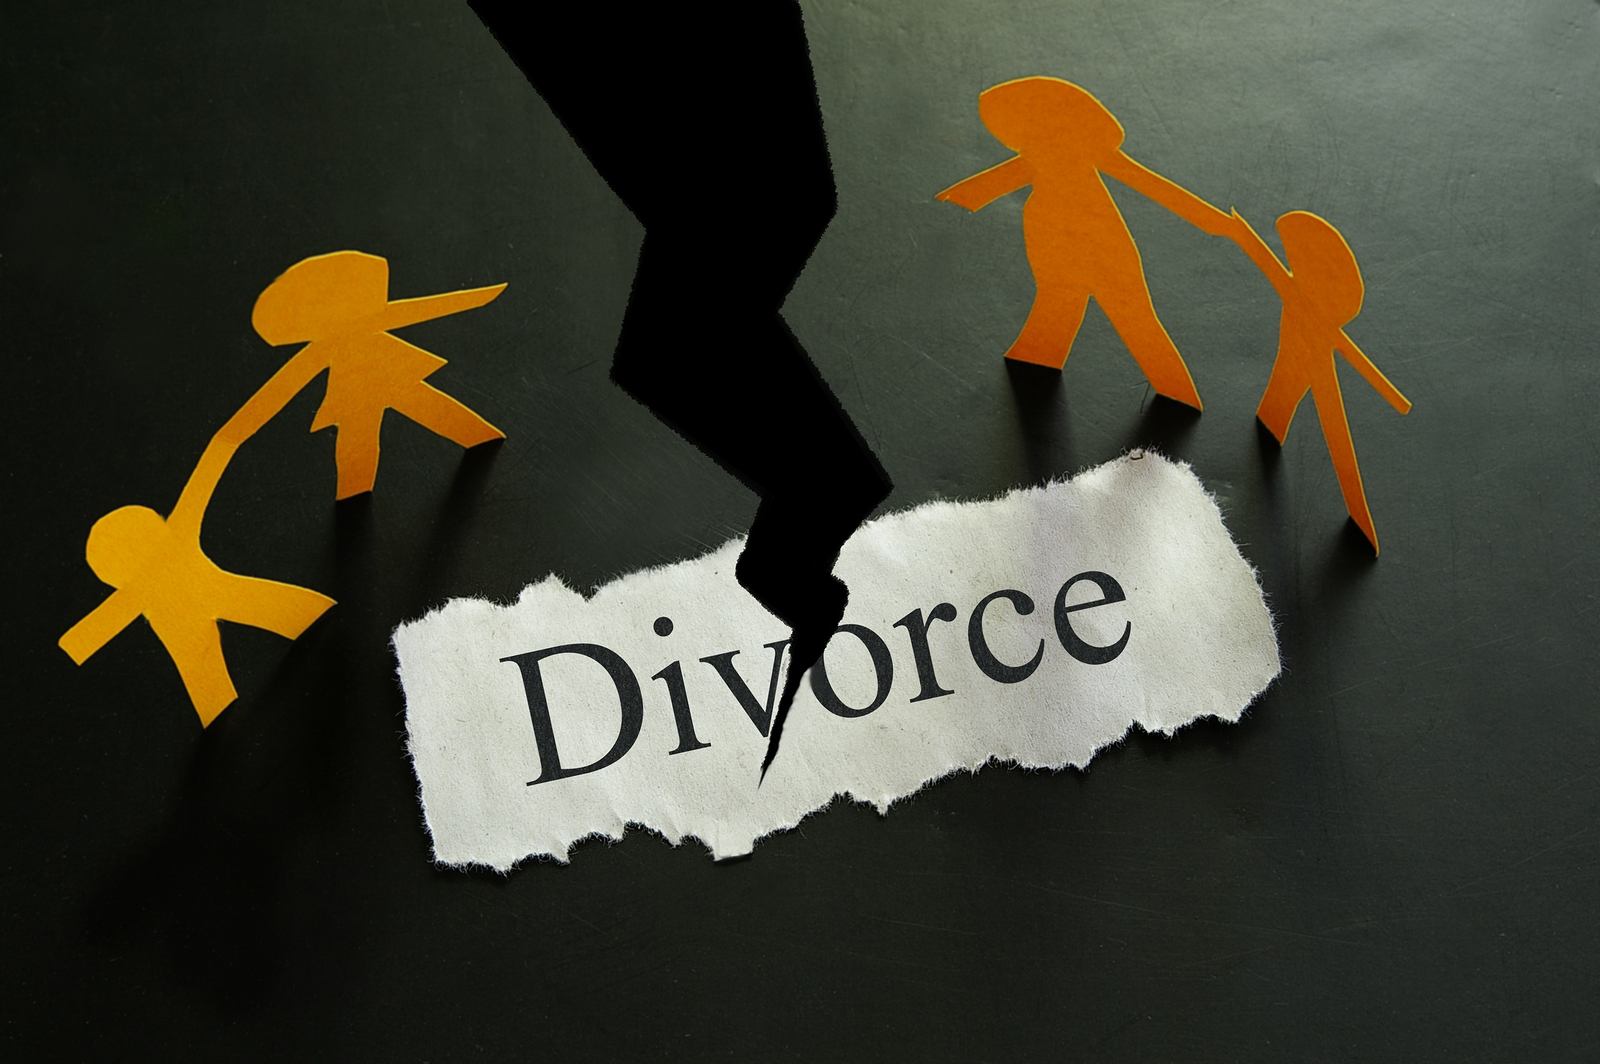 Divorce-image.jpg